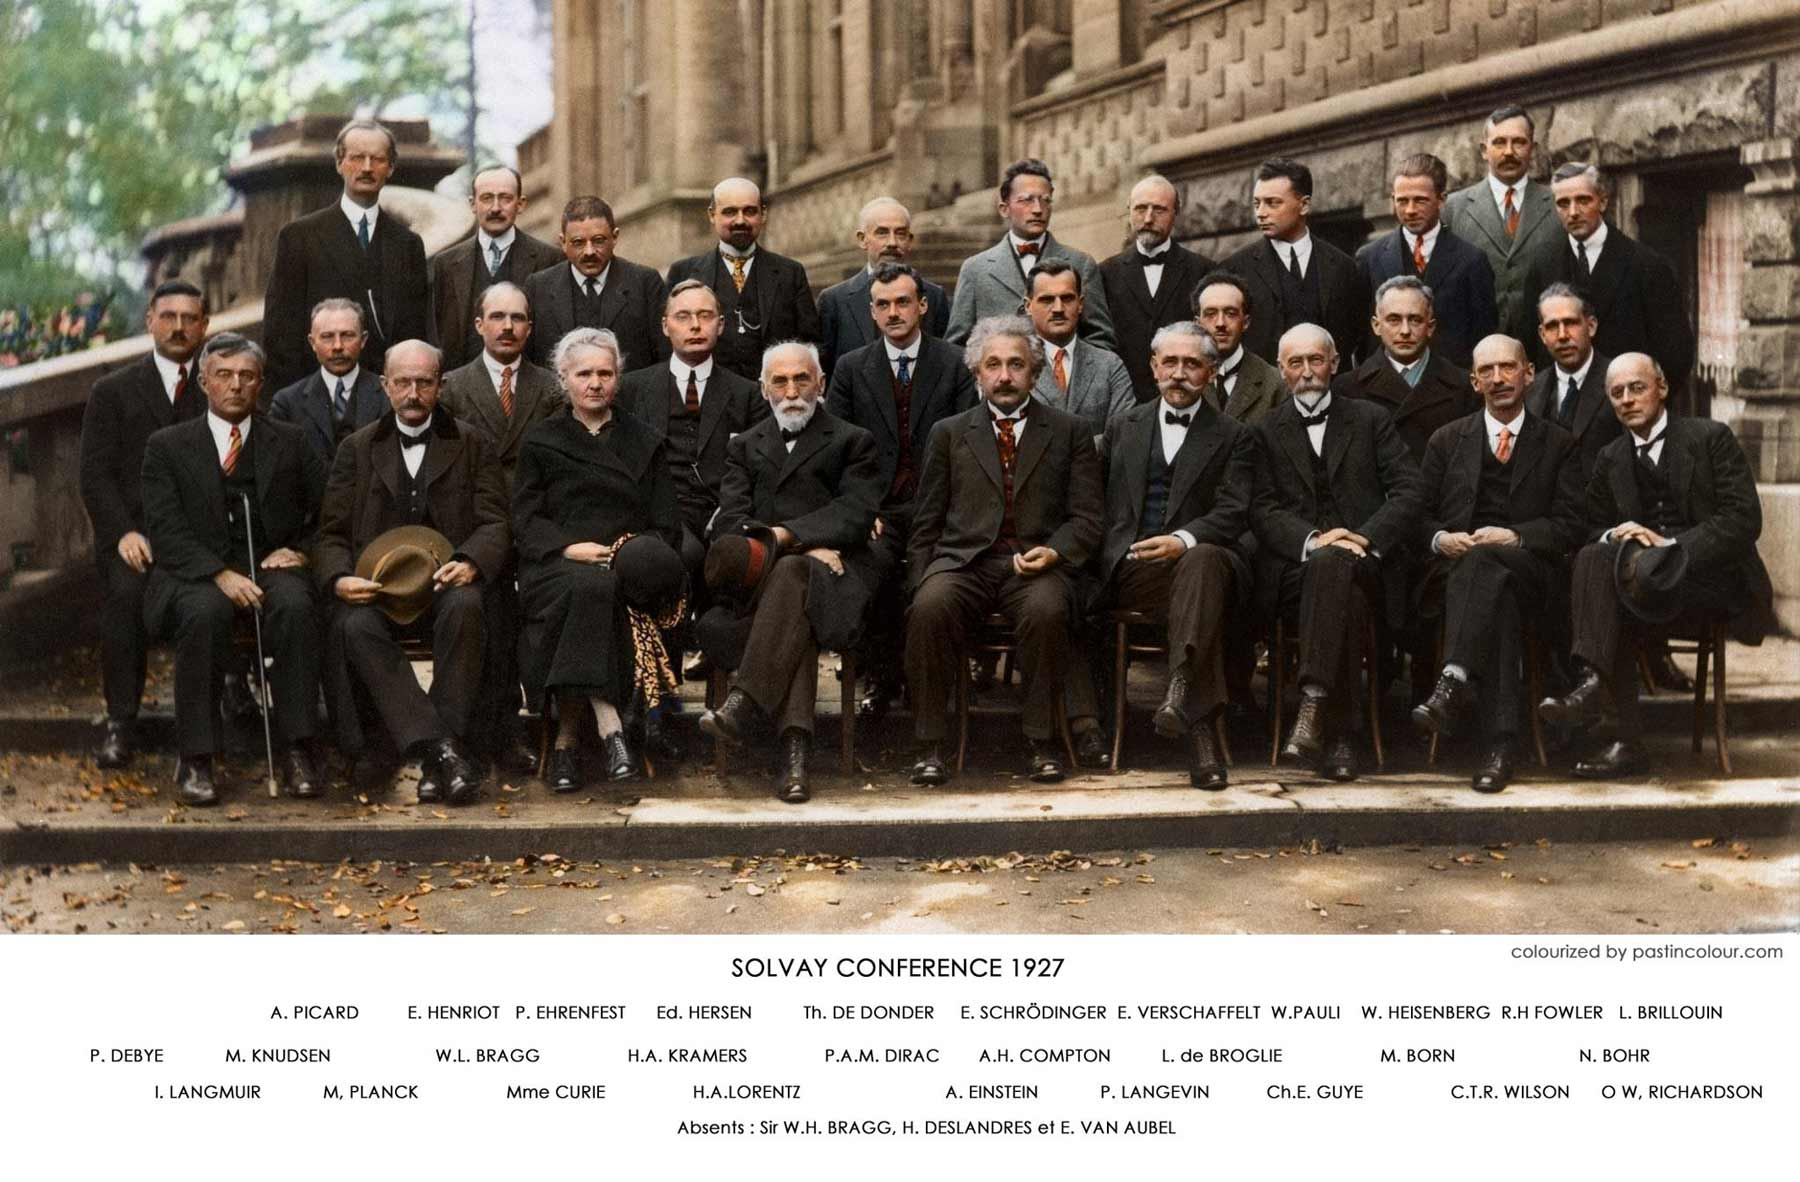 The world's greatest physicists in a picture